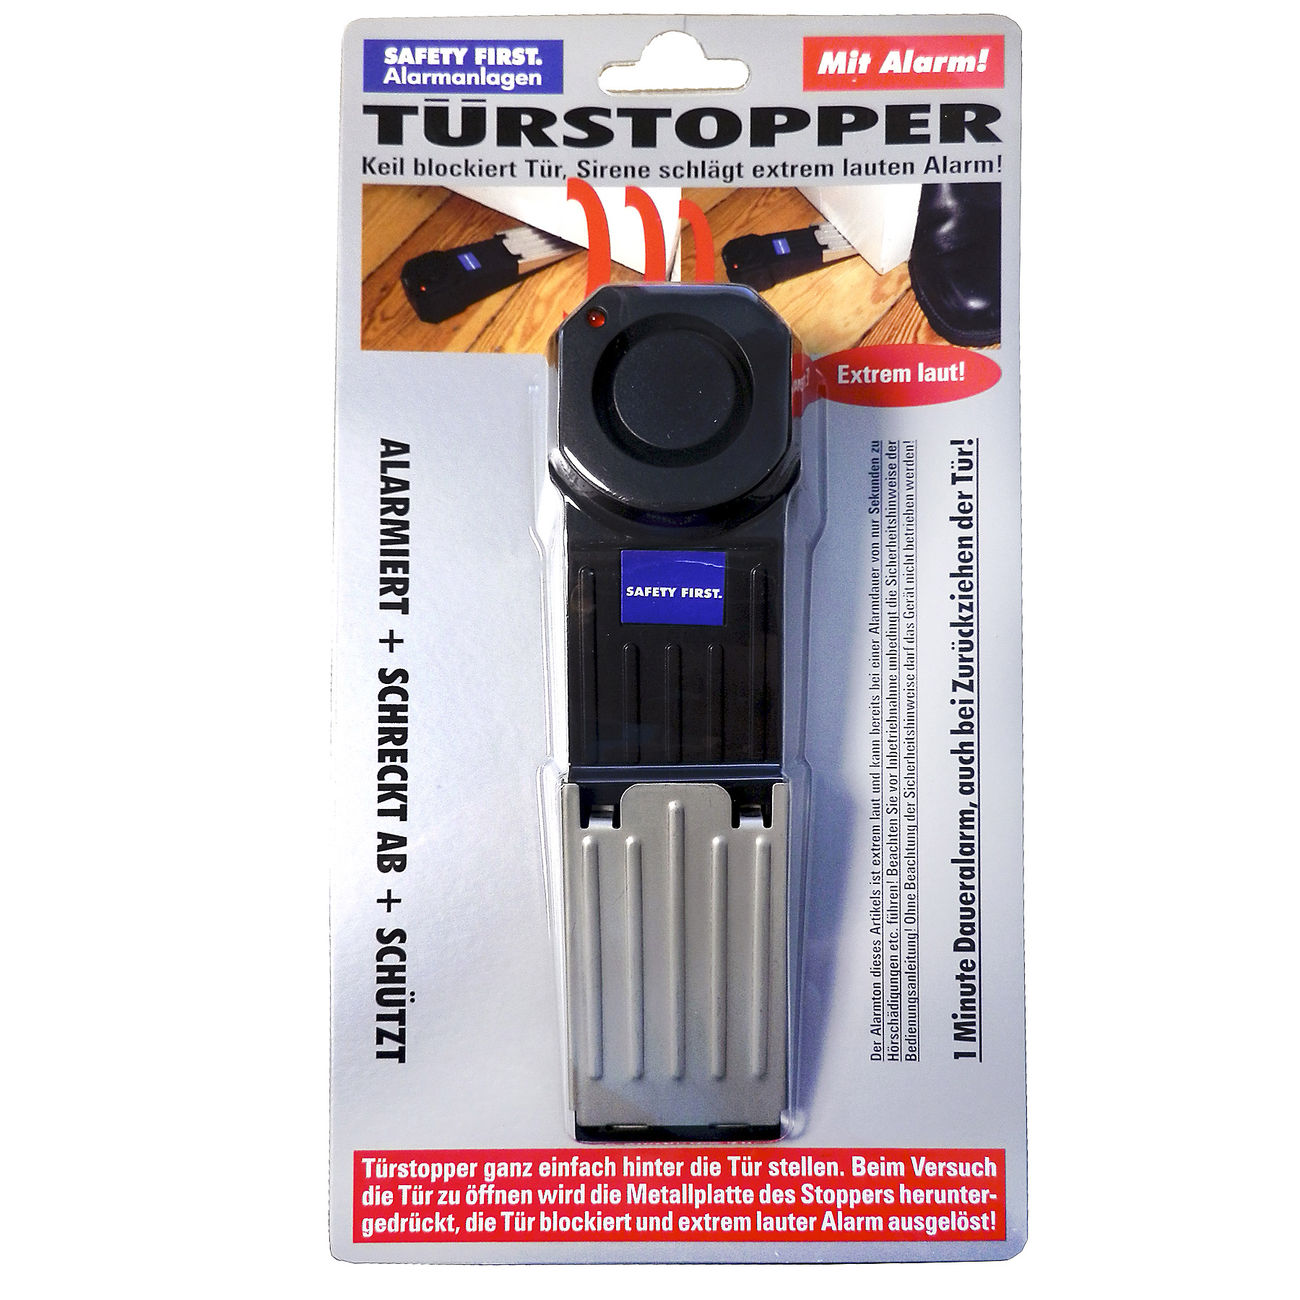 Safety First Alarm-Türstopper Türalarm inkl. LED-Batteriekontrolle schwarz 1